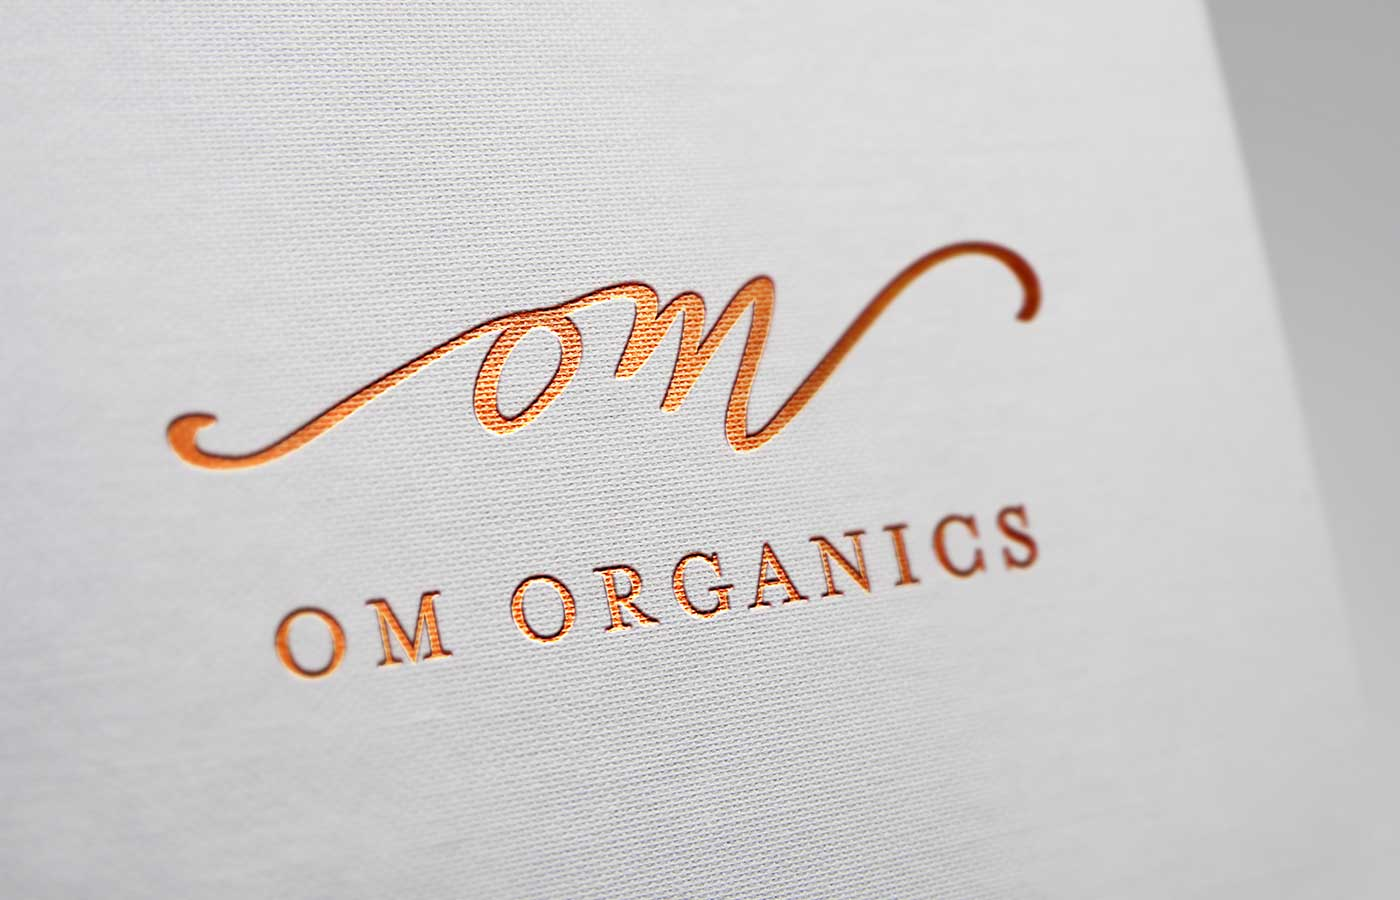 covetdesign_logo-design_branding_package-design_graphic-designer_vancouver_work_wide_omorganics-logo